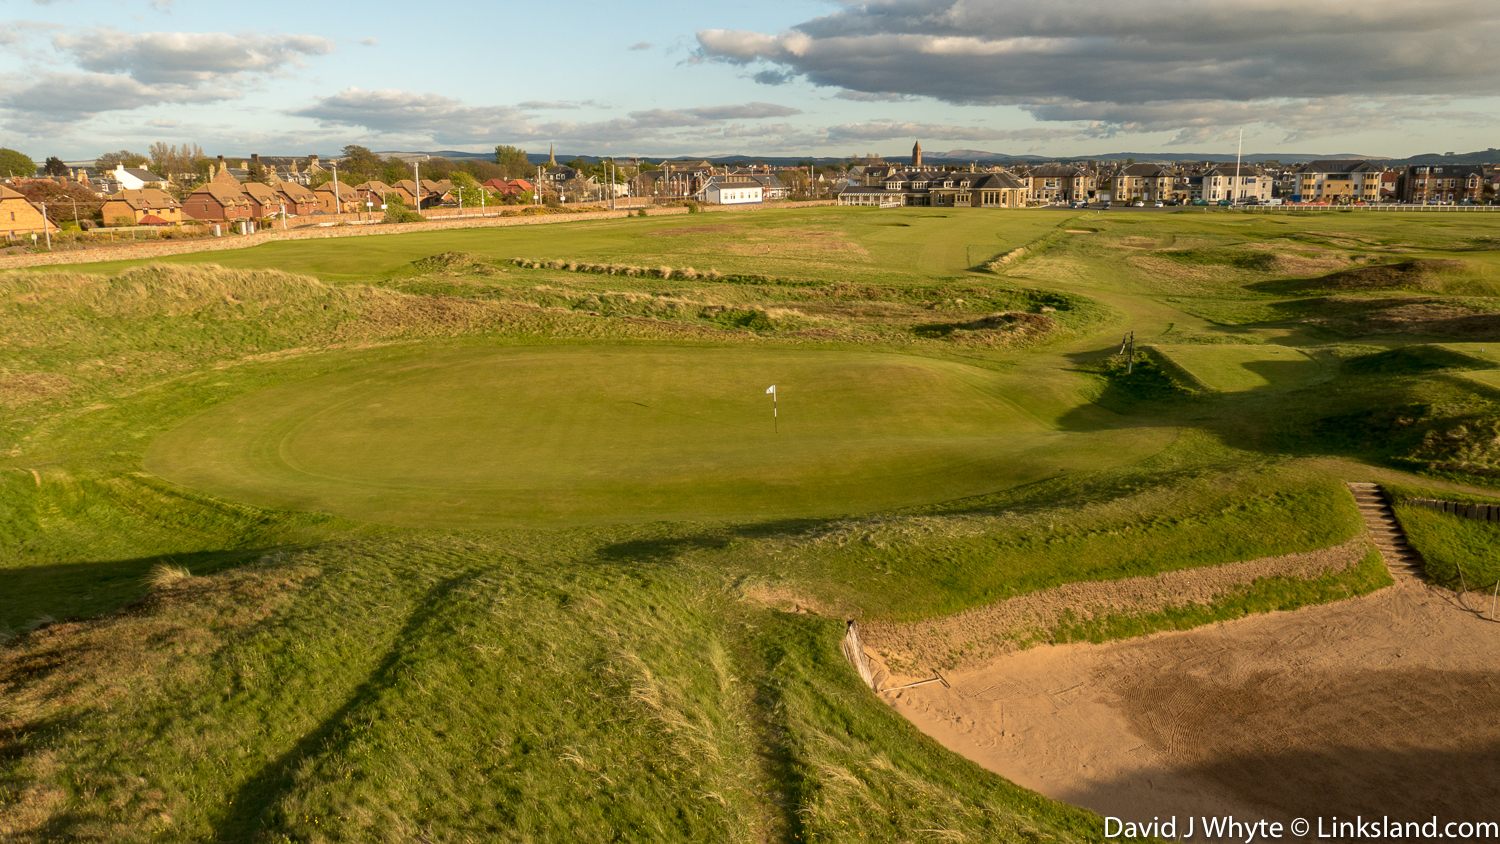 The 17th at Old Prestwick, the original 2nd hole from Old Tom's 1851 layout and the oldest existing hole in championship golf.